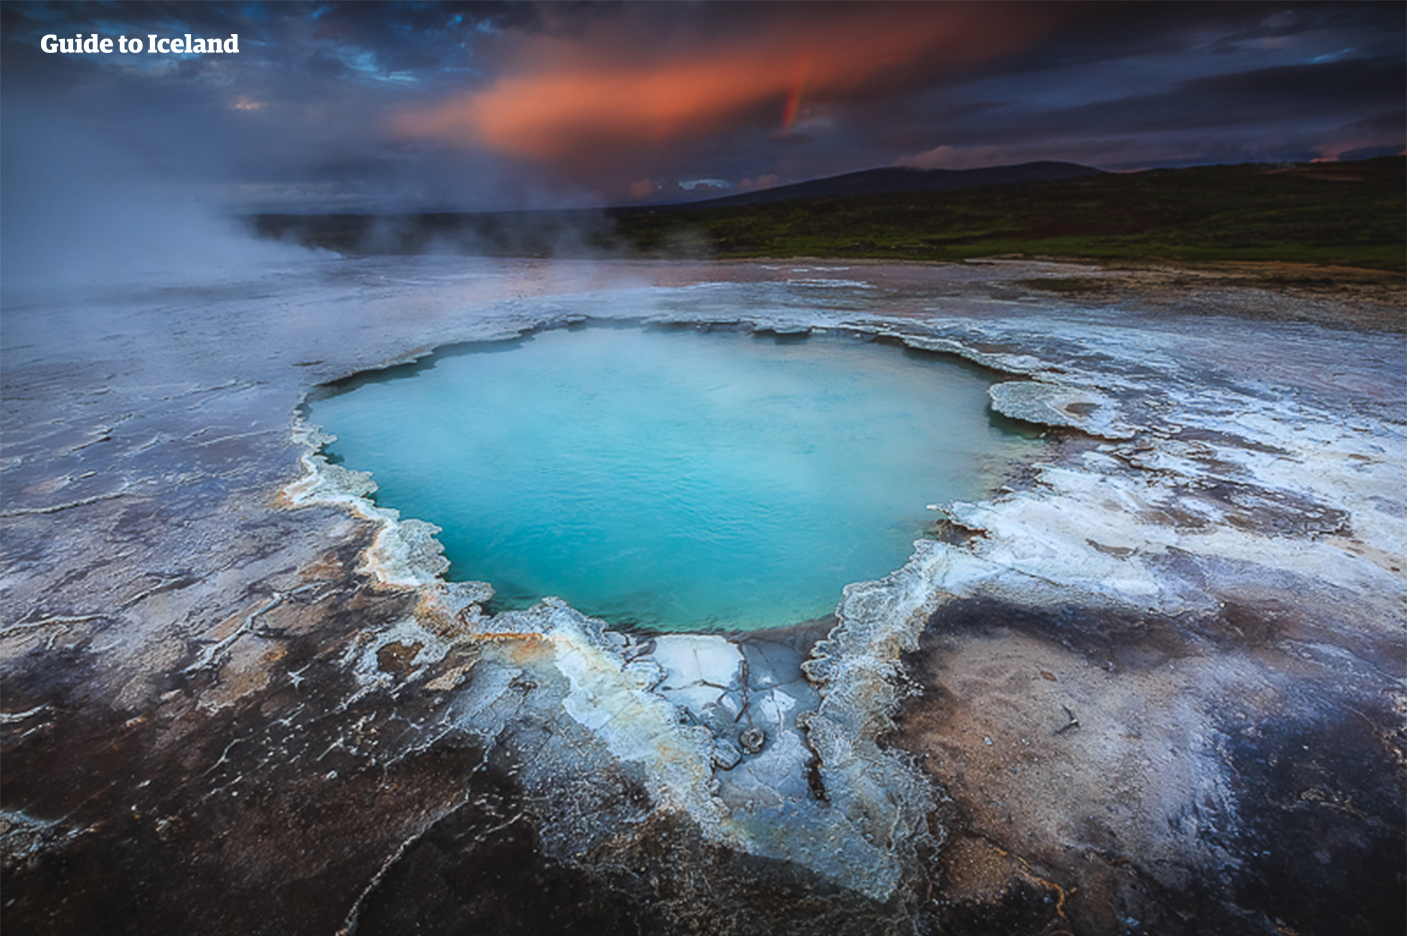 Guided 10 Day Summer Vacation Package of the Complete Ring Road of Iceland with Free Days in Reykjav - day 7